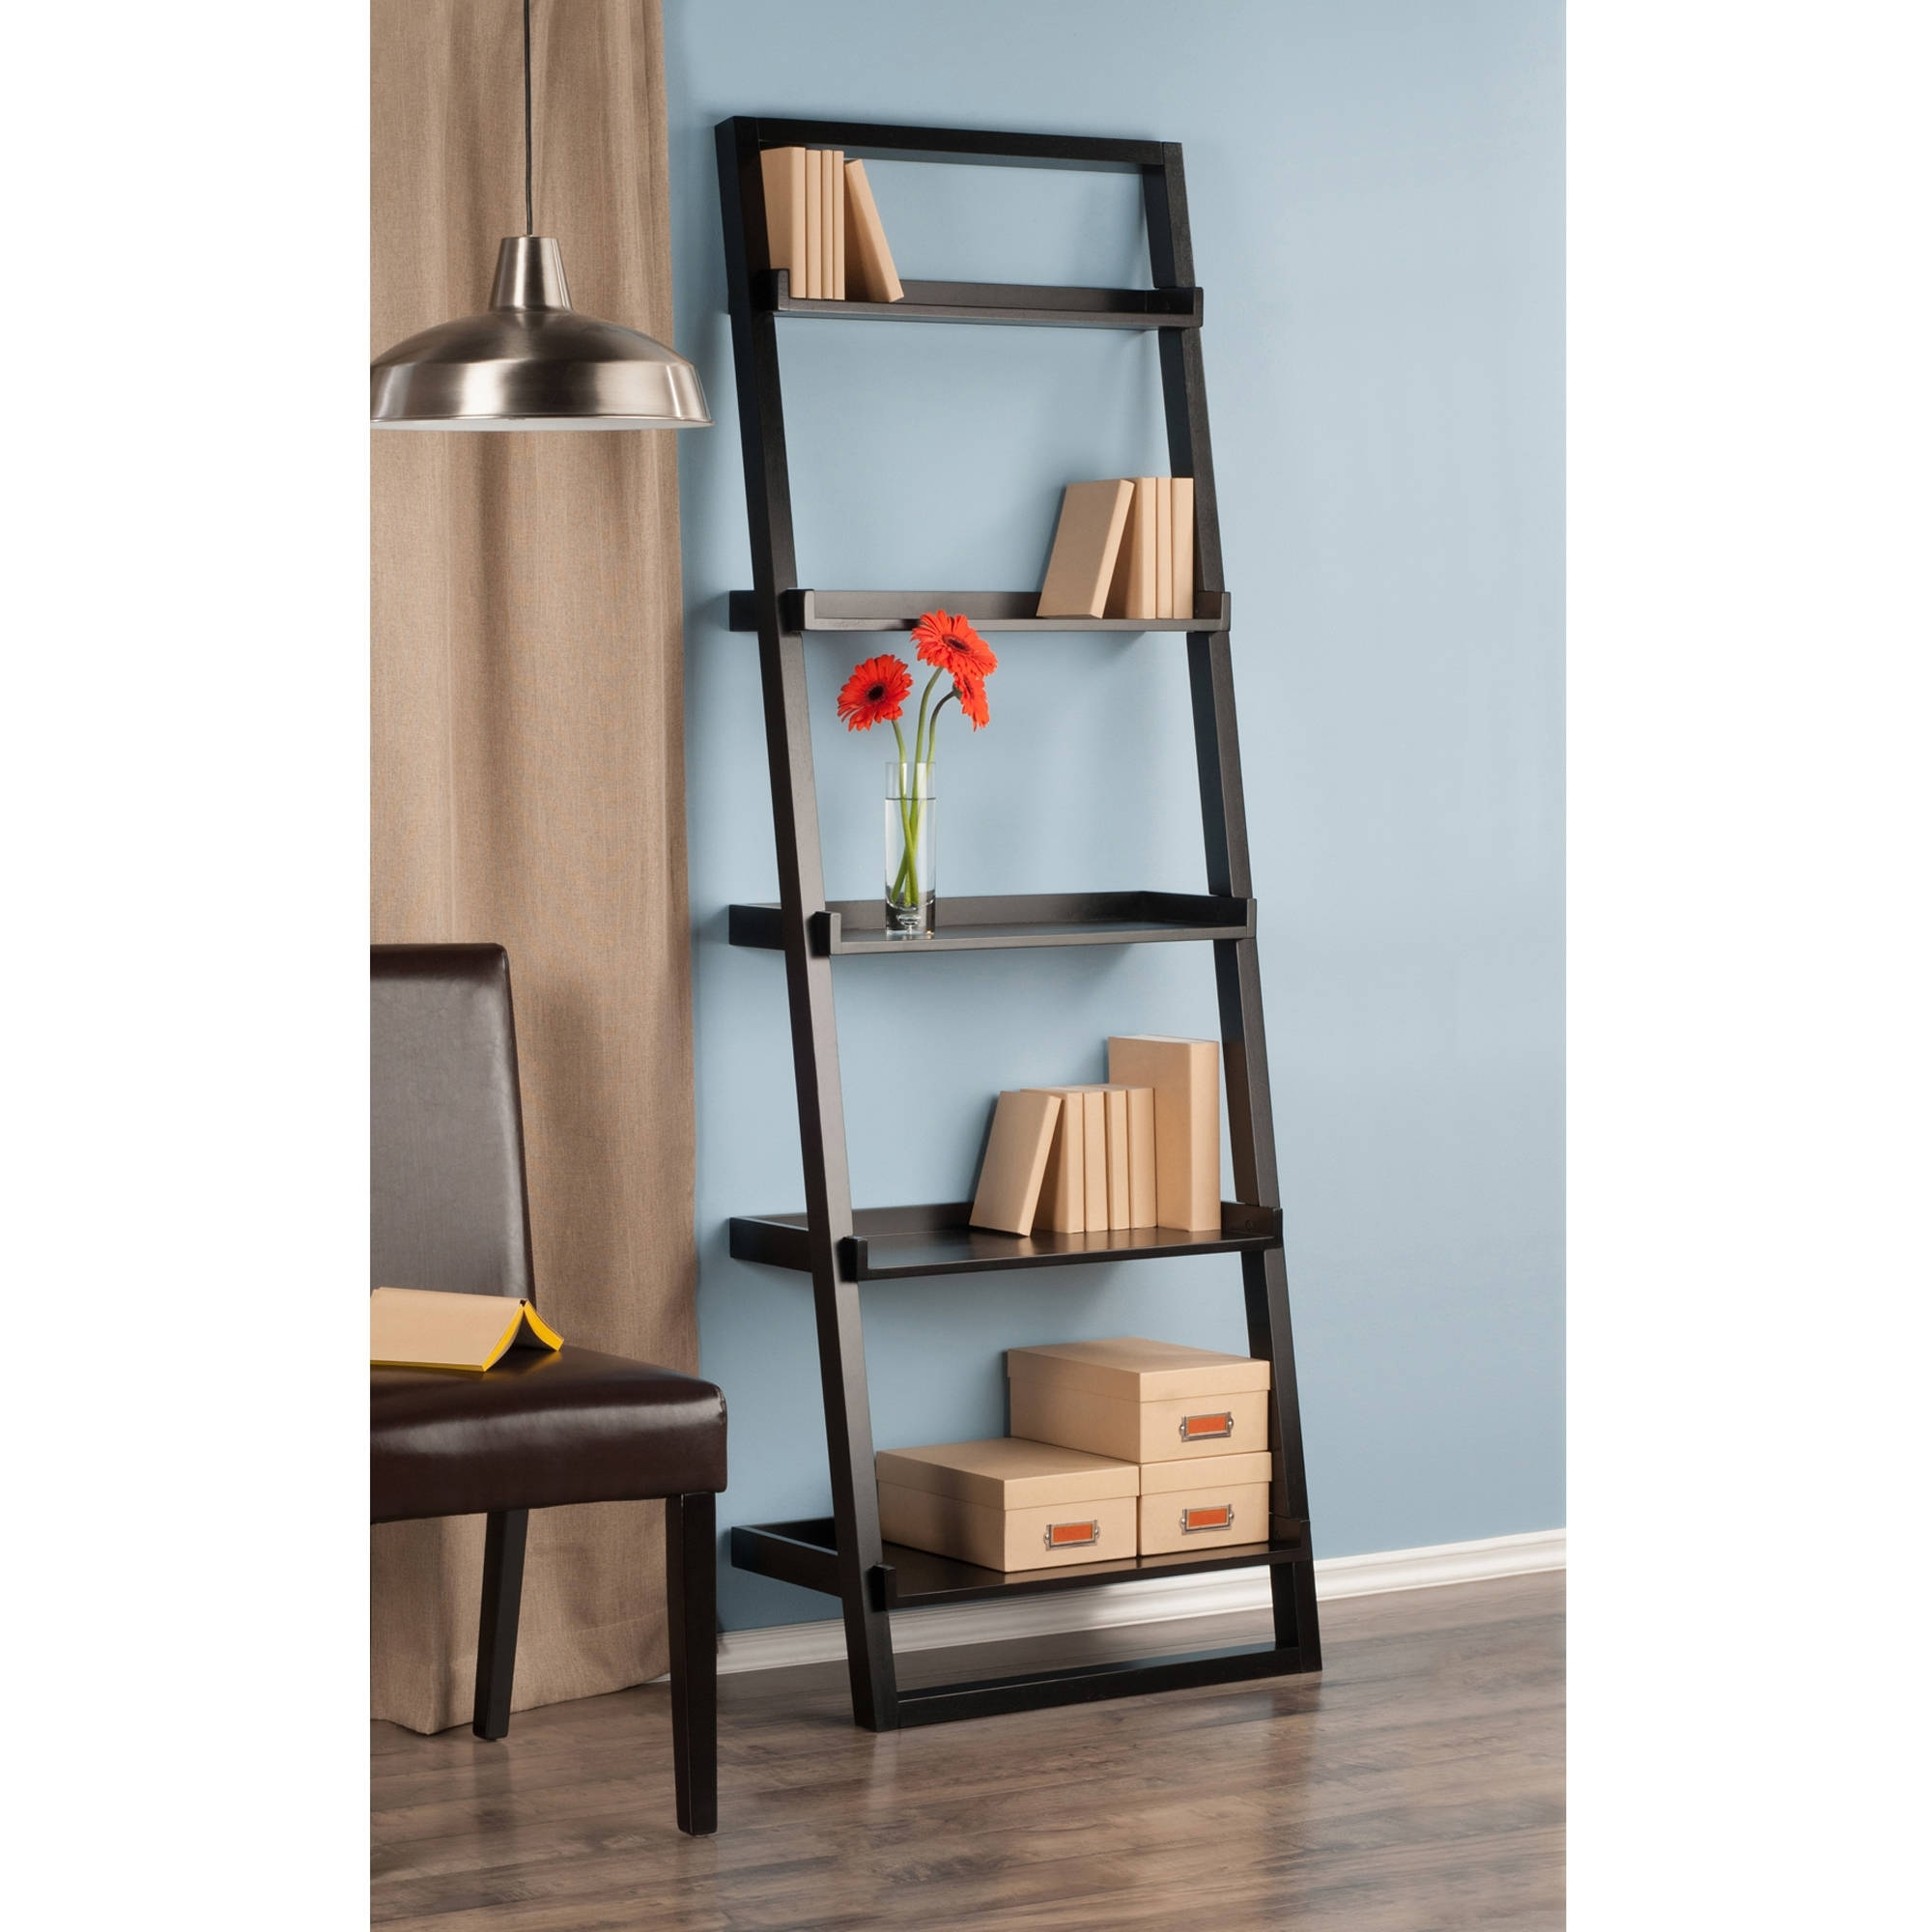 Well Liked Leaning Bookcases Intended For Leaning Wall 5 Shelf Bookcase, Black – Walmart (View 8 of 15)